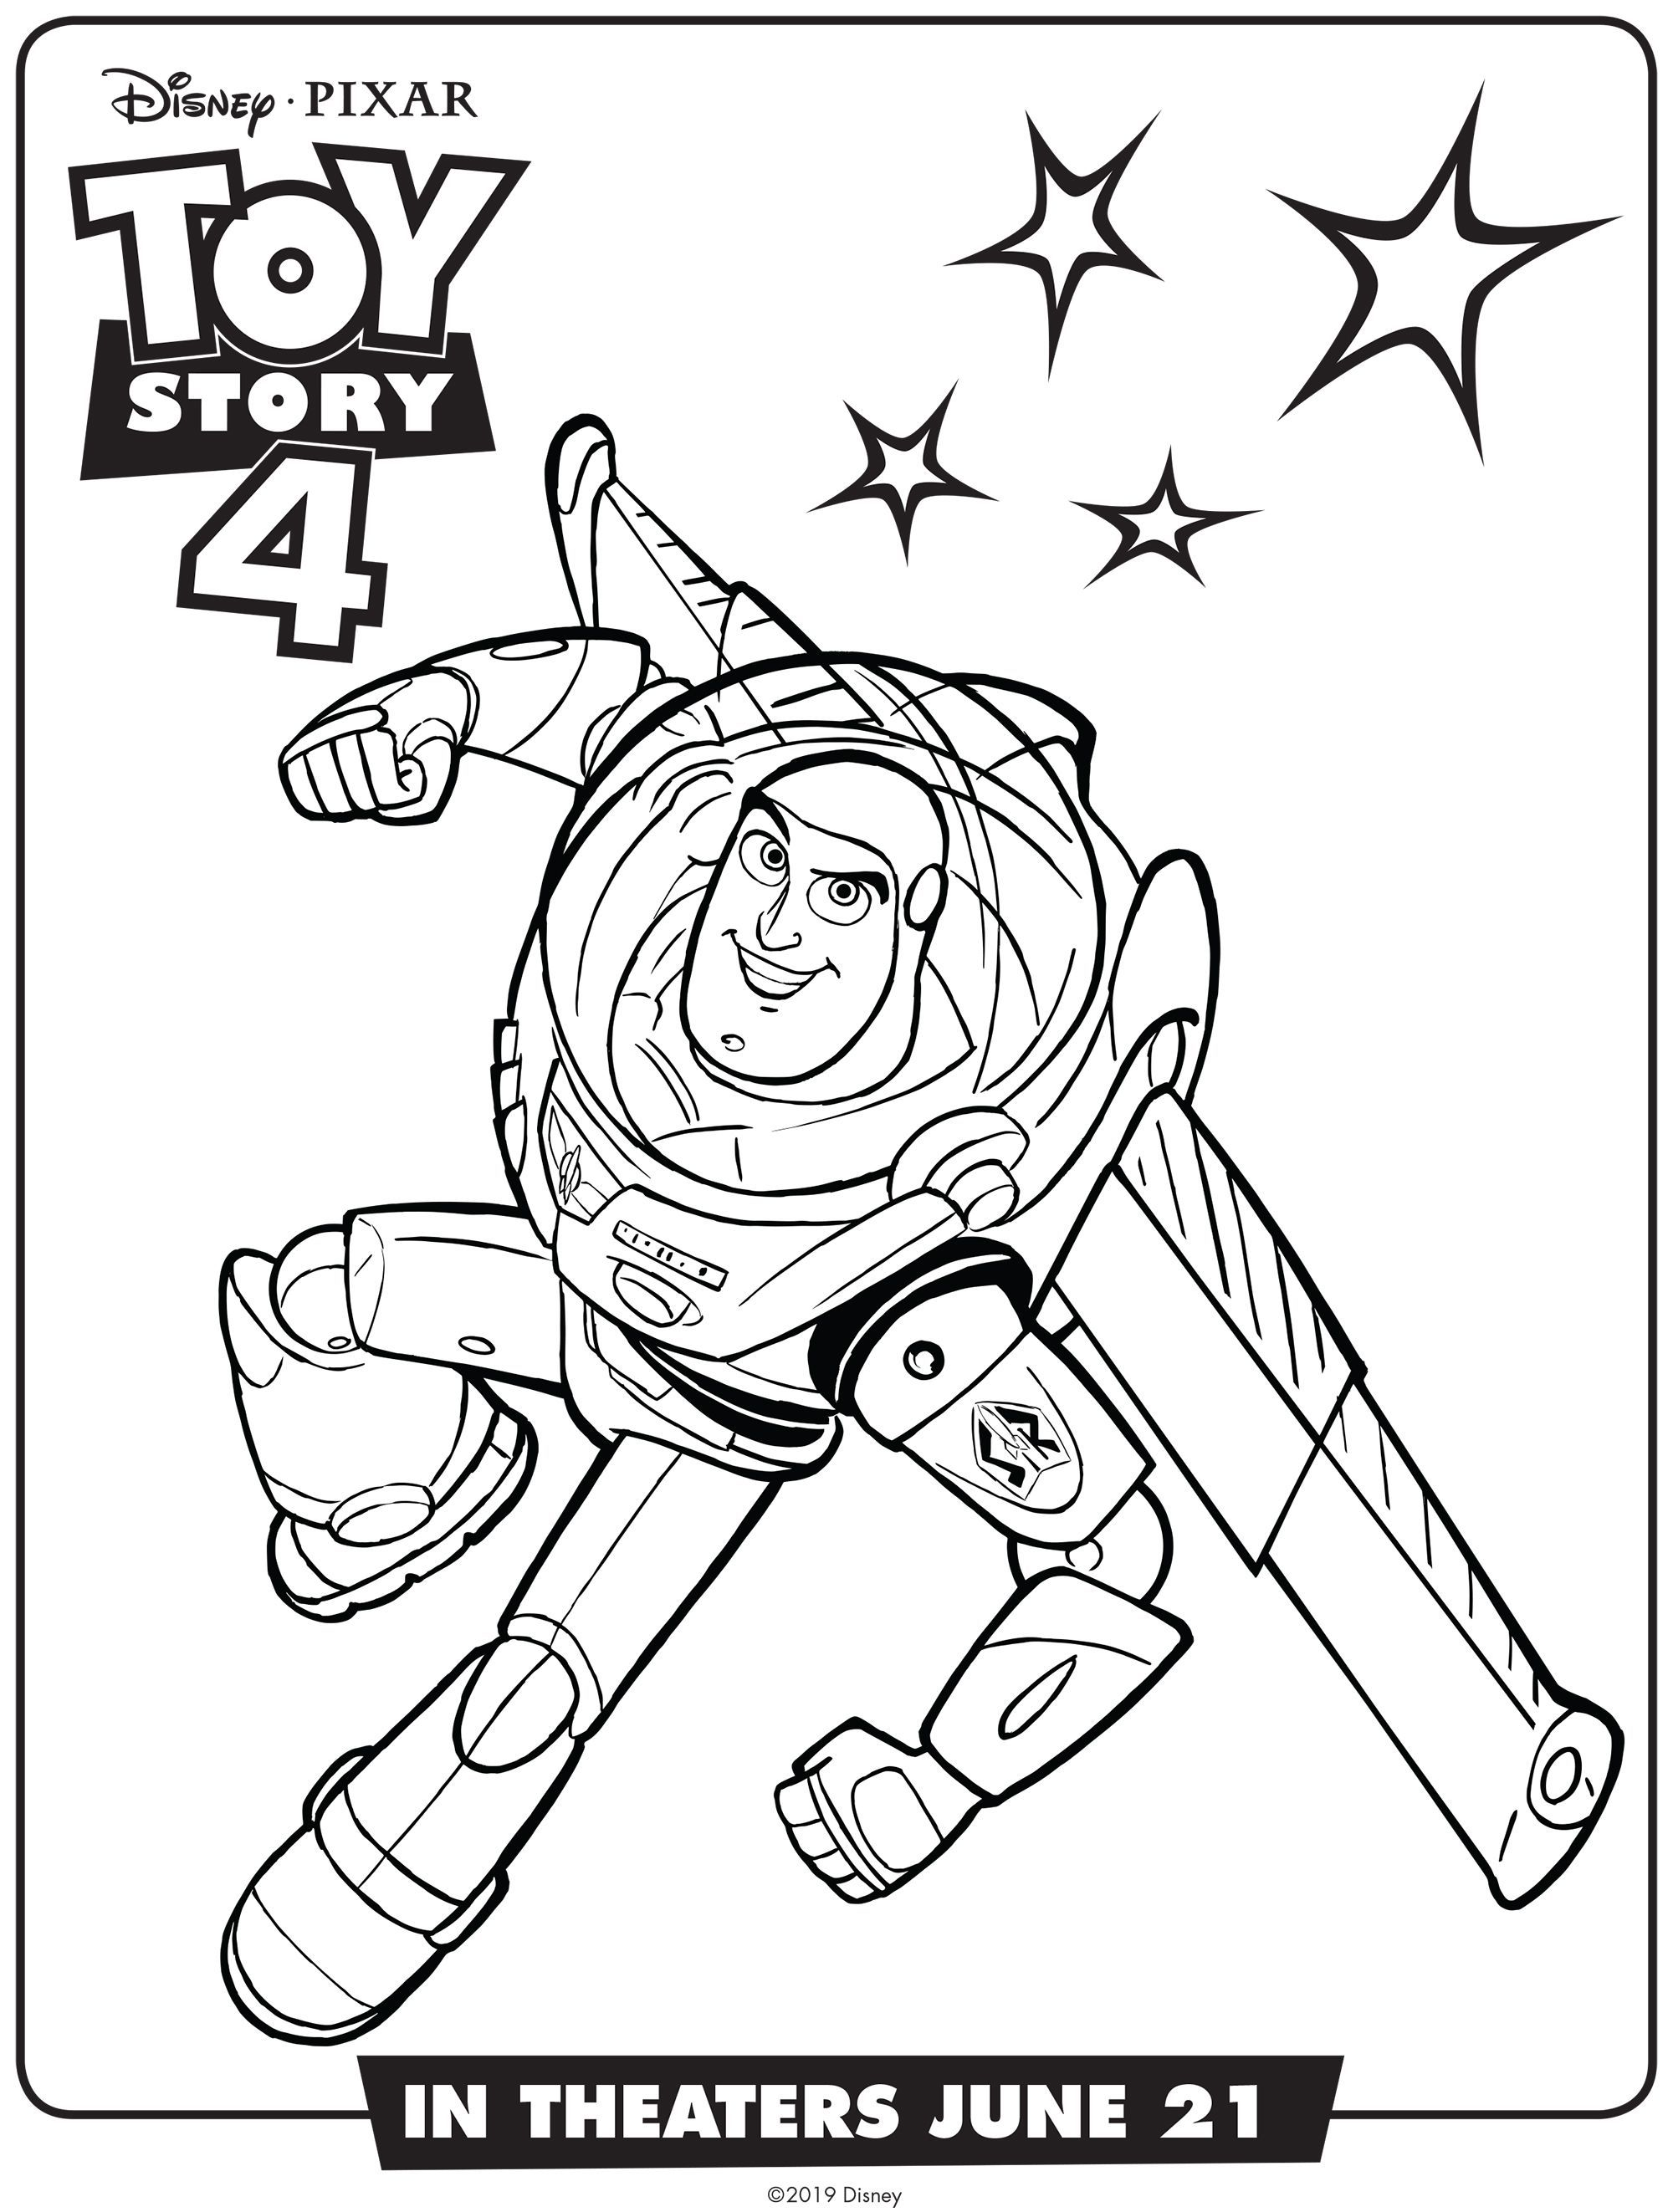 Simple Toy Story 4 Coloring Page For Kids Buzz Lightyear From The Gallery Toy Story 4 In 2020 Toy Story Coloring Pages Disney Coloring Pages Coloring Books